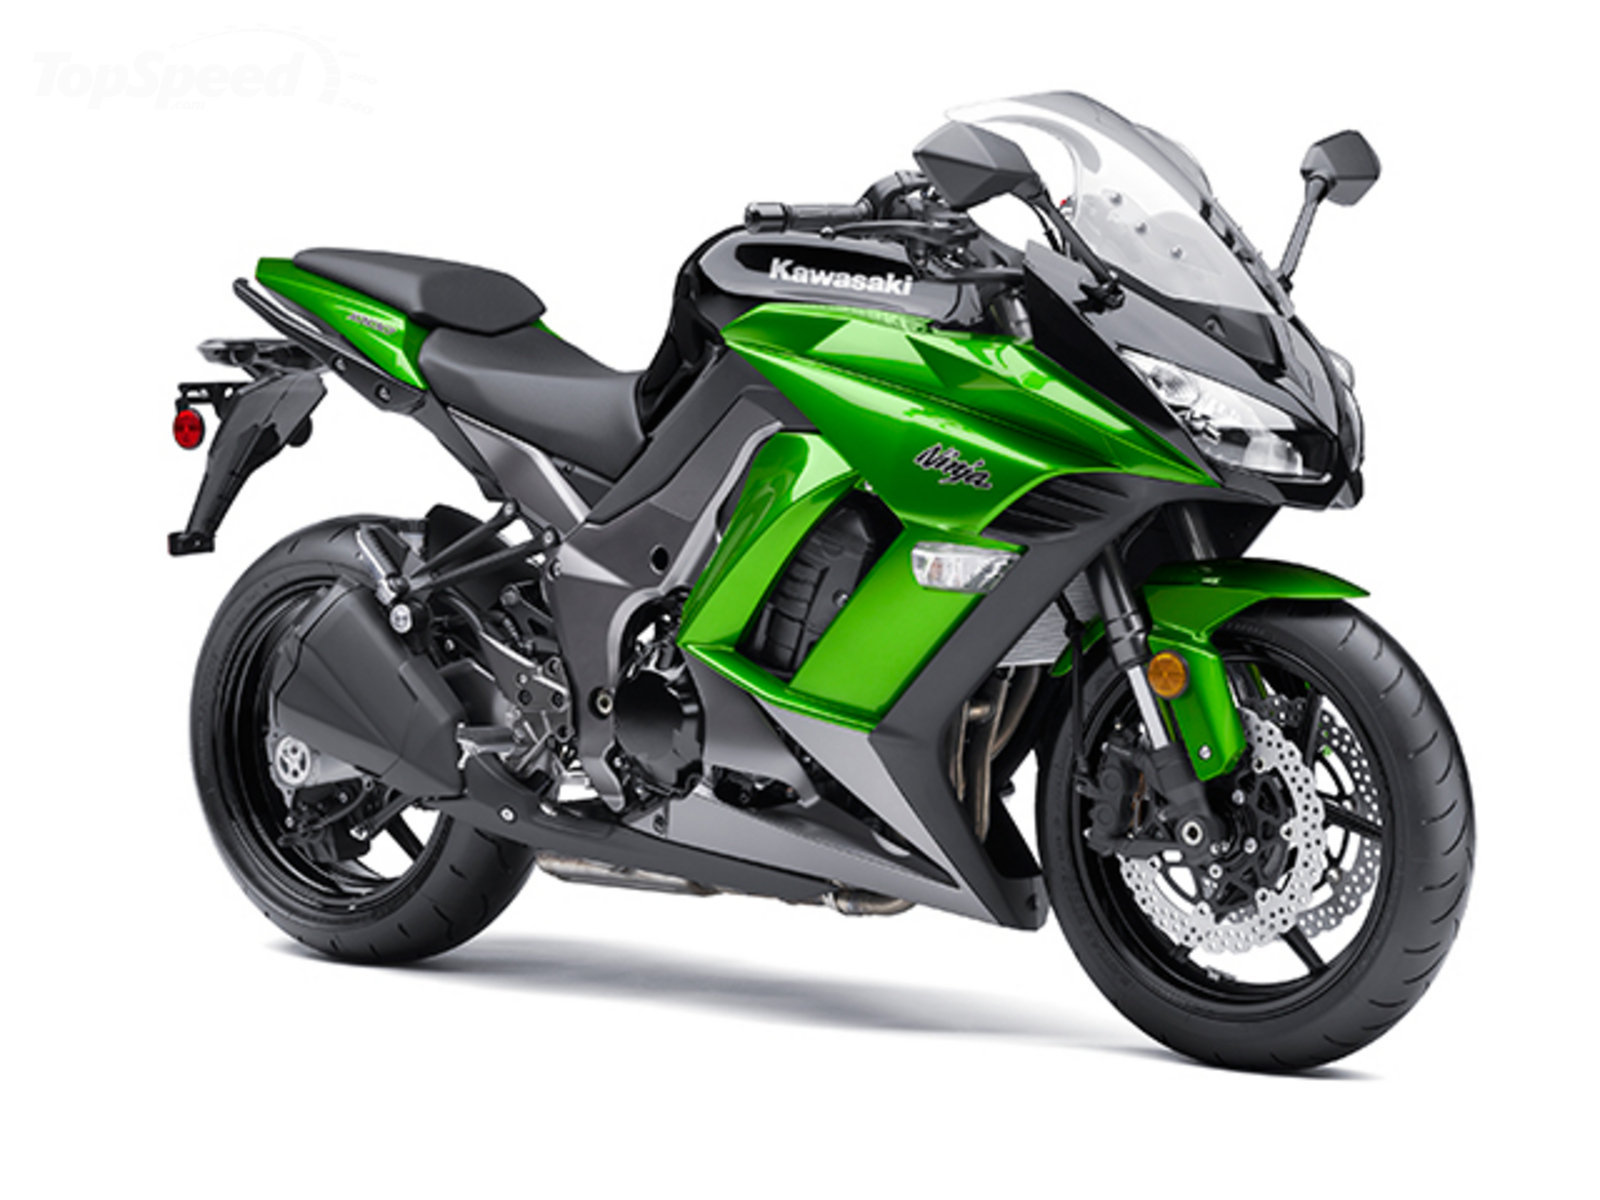 Kawasaki  Cylinder Motorcycle Is Over The Top